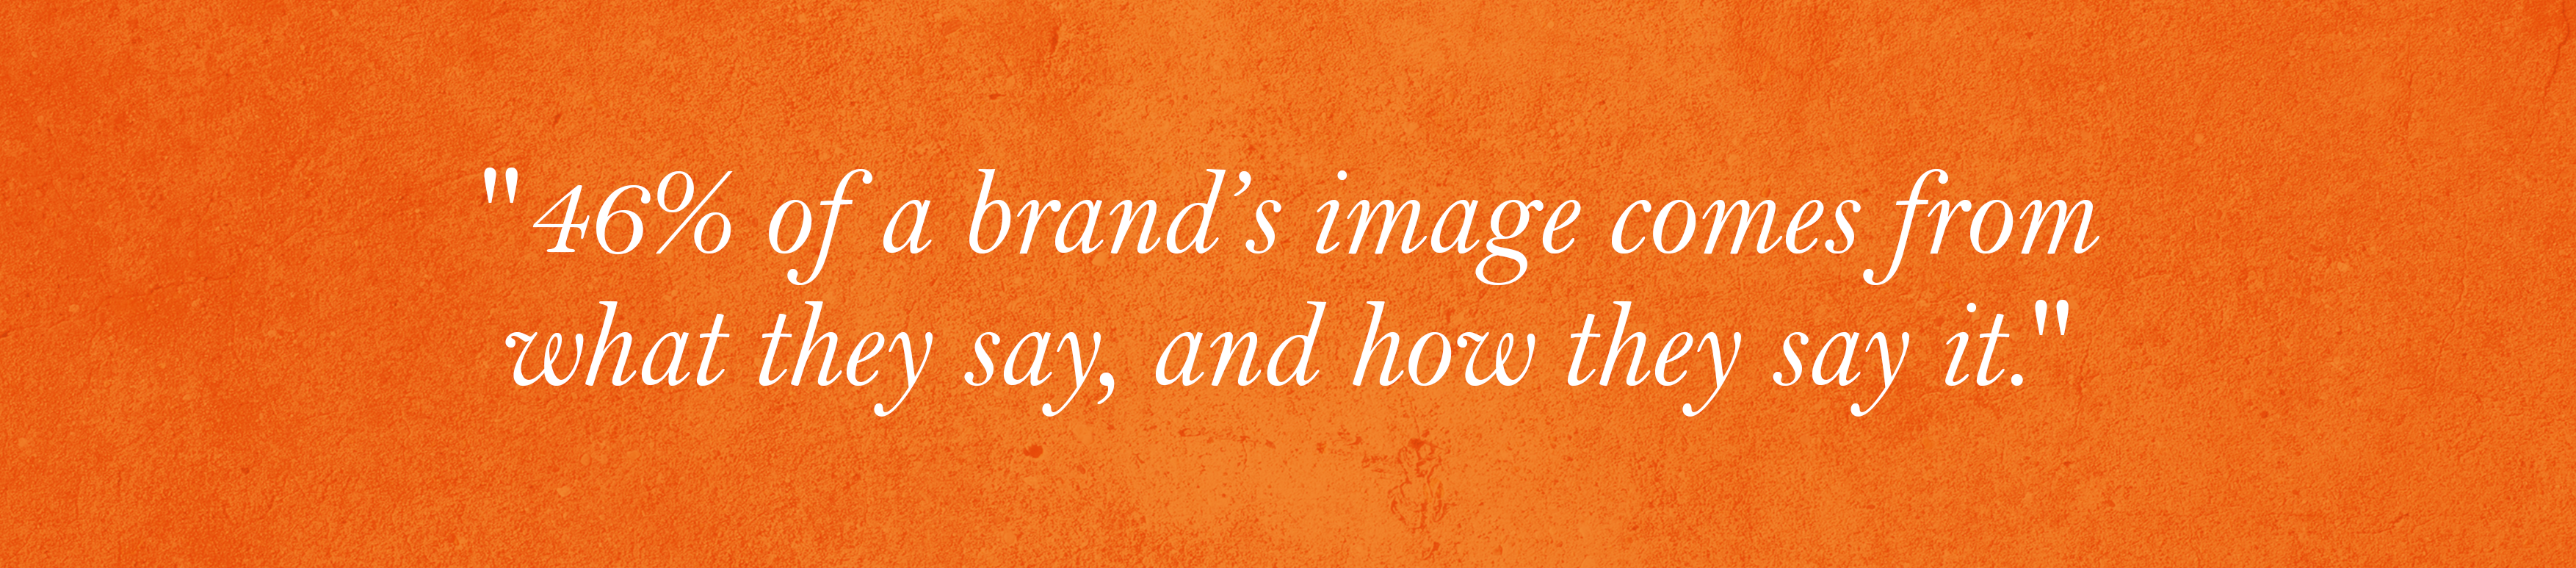 46% of a brand's image comes from what they say, and how they say it